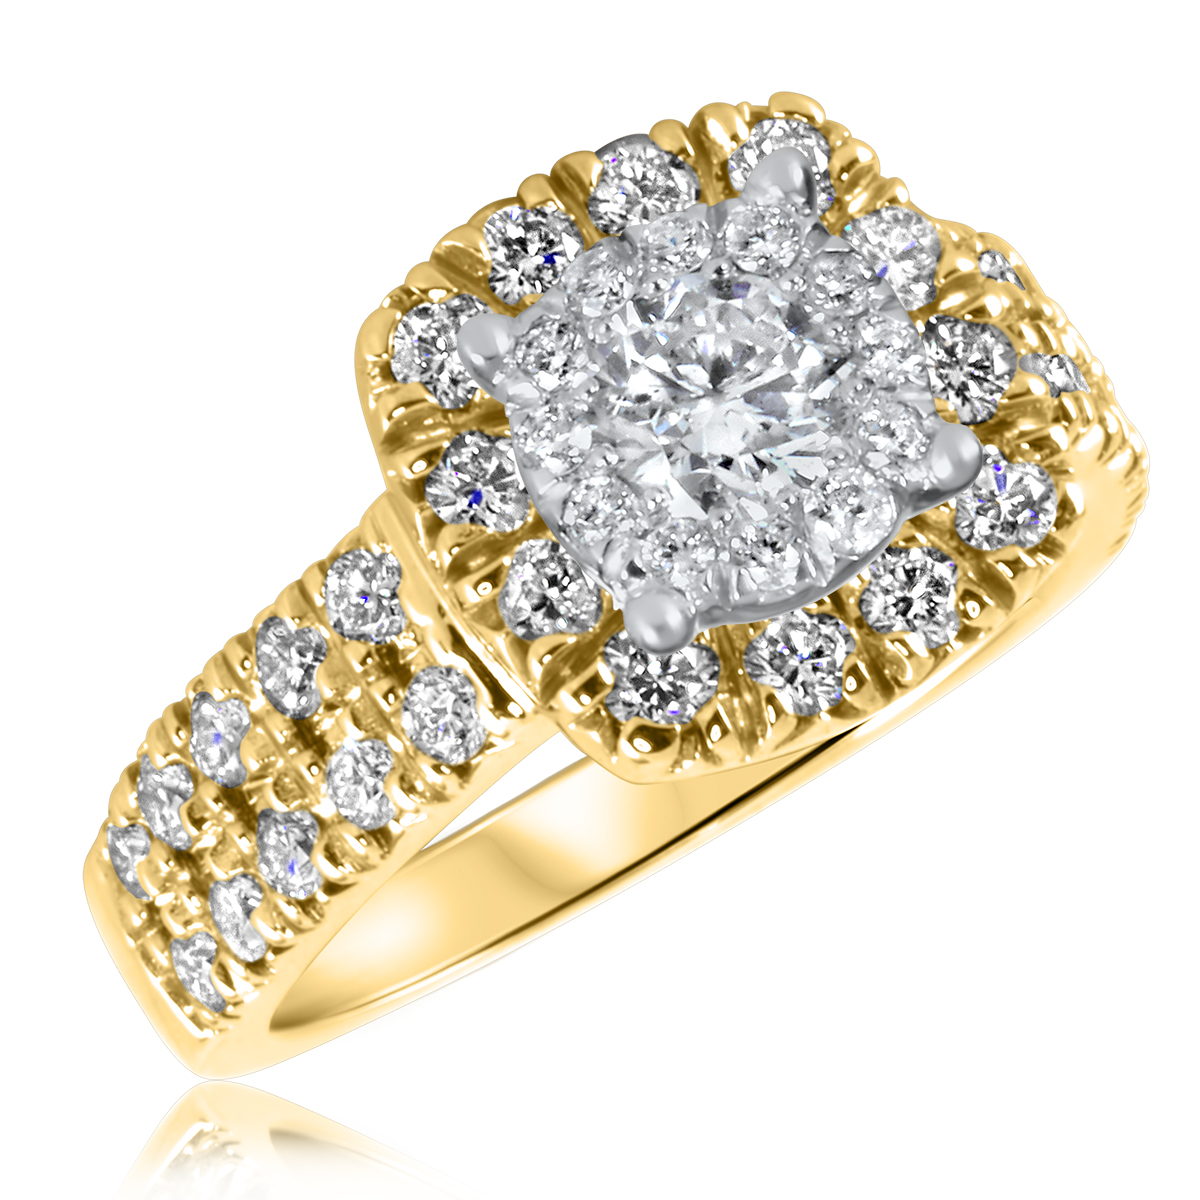 1 1/2 CT. T.W. Diamond Ladies Engagement Ring 14K Yellow Gold- Size 8